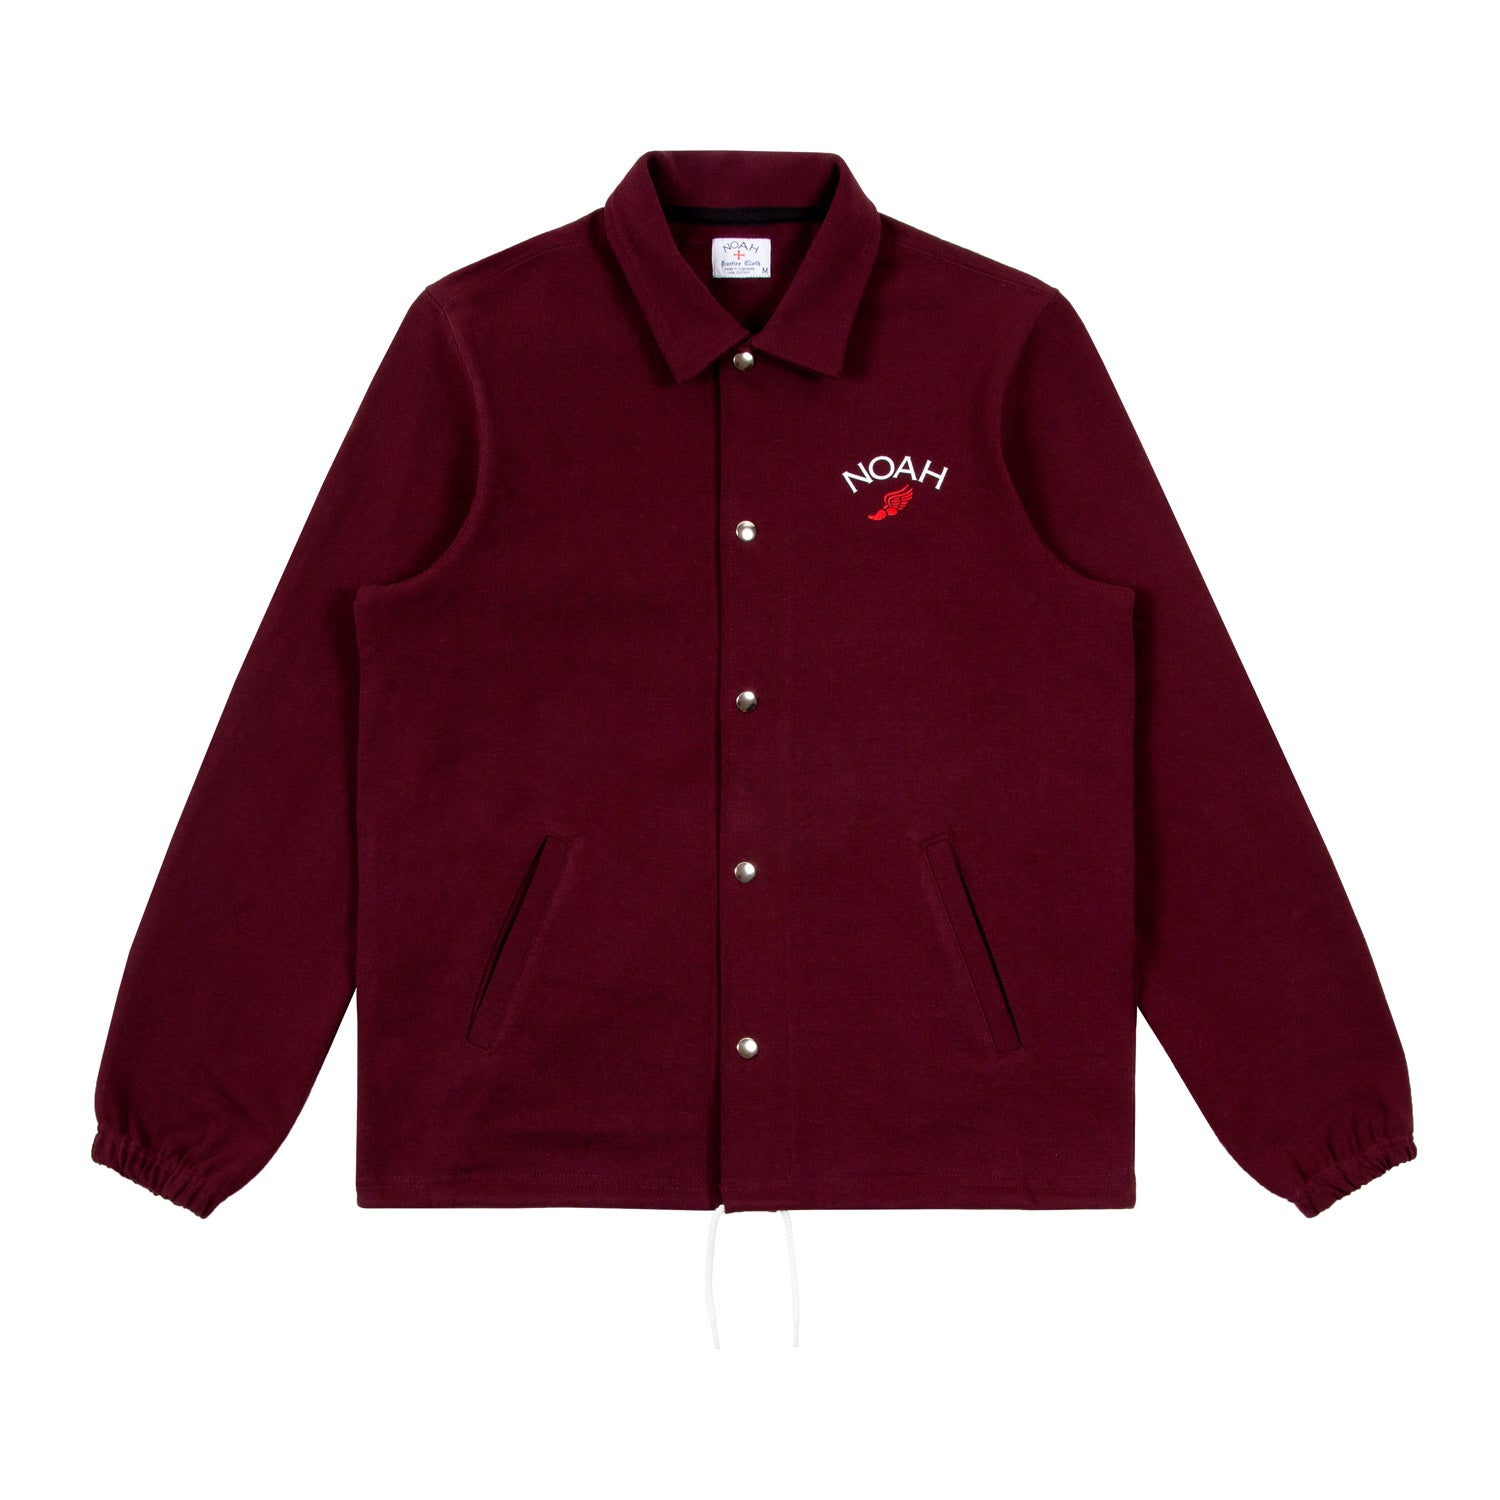 Rugby Coaches Jacket